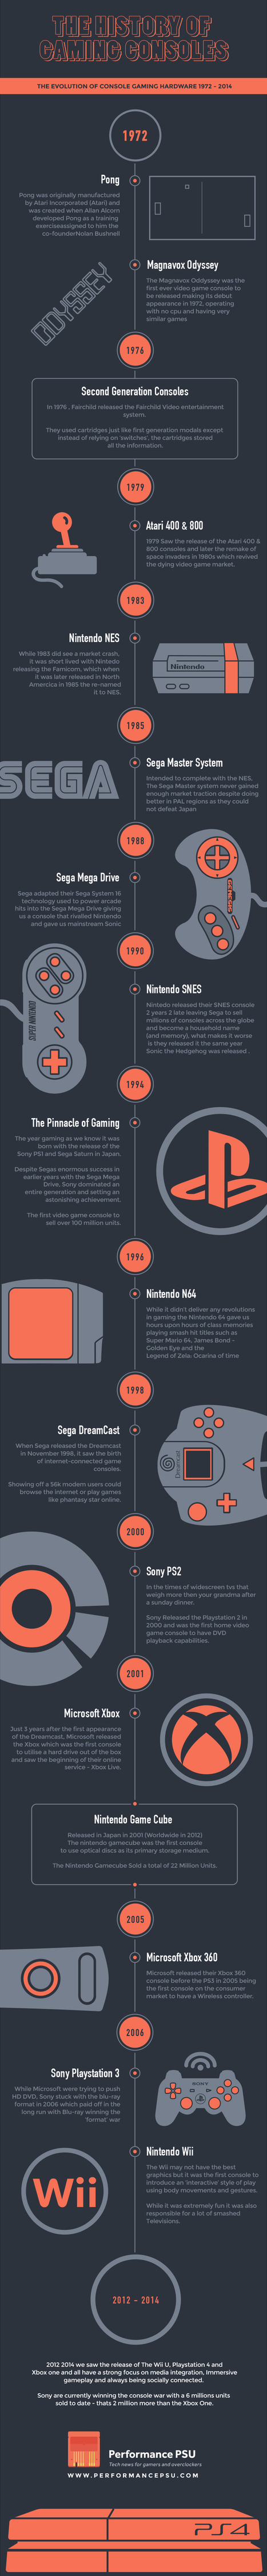 The History of Video Gaming Consoles 1972 - 2014 | Business | Scoop.it